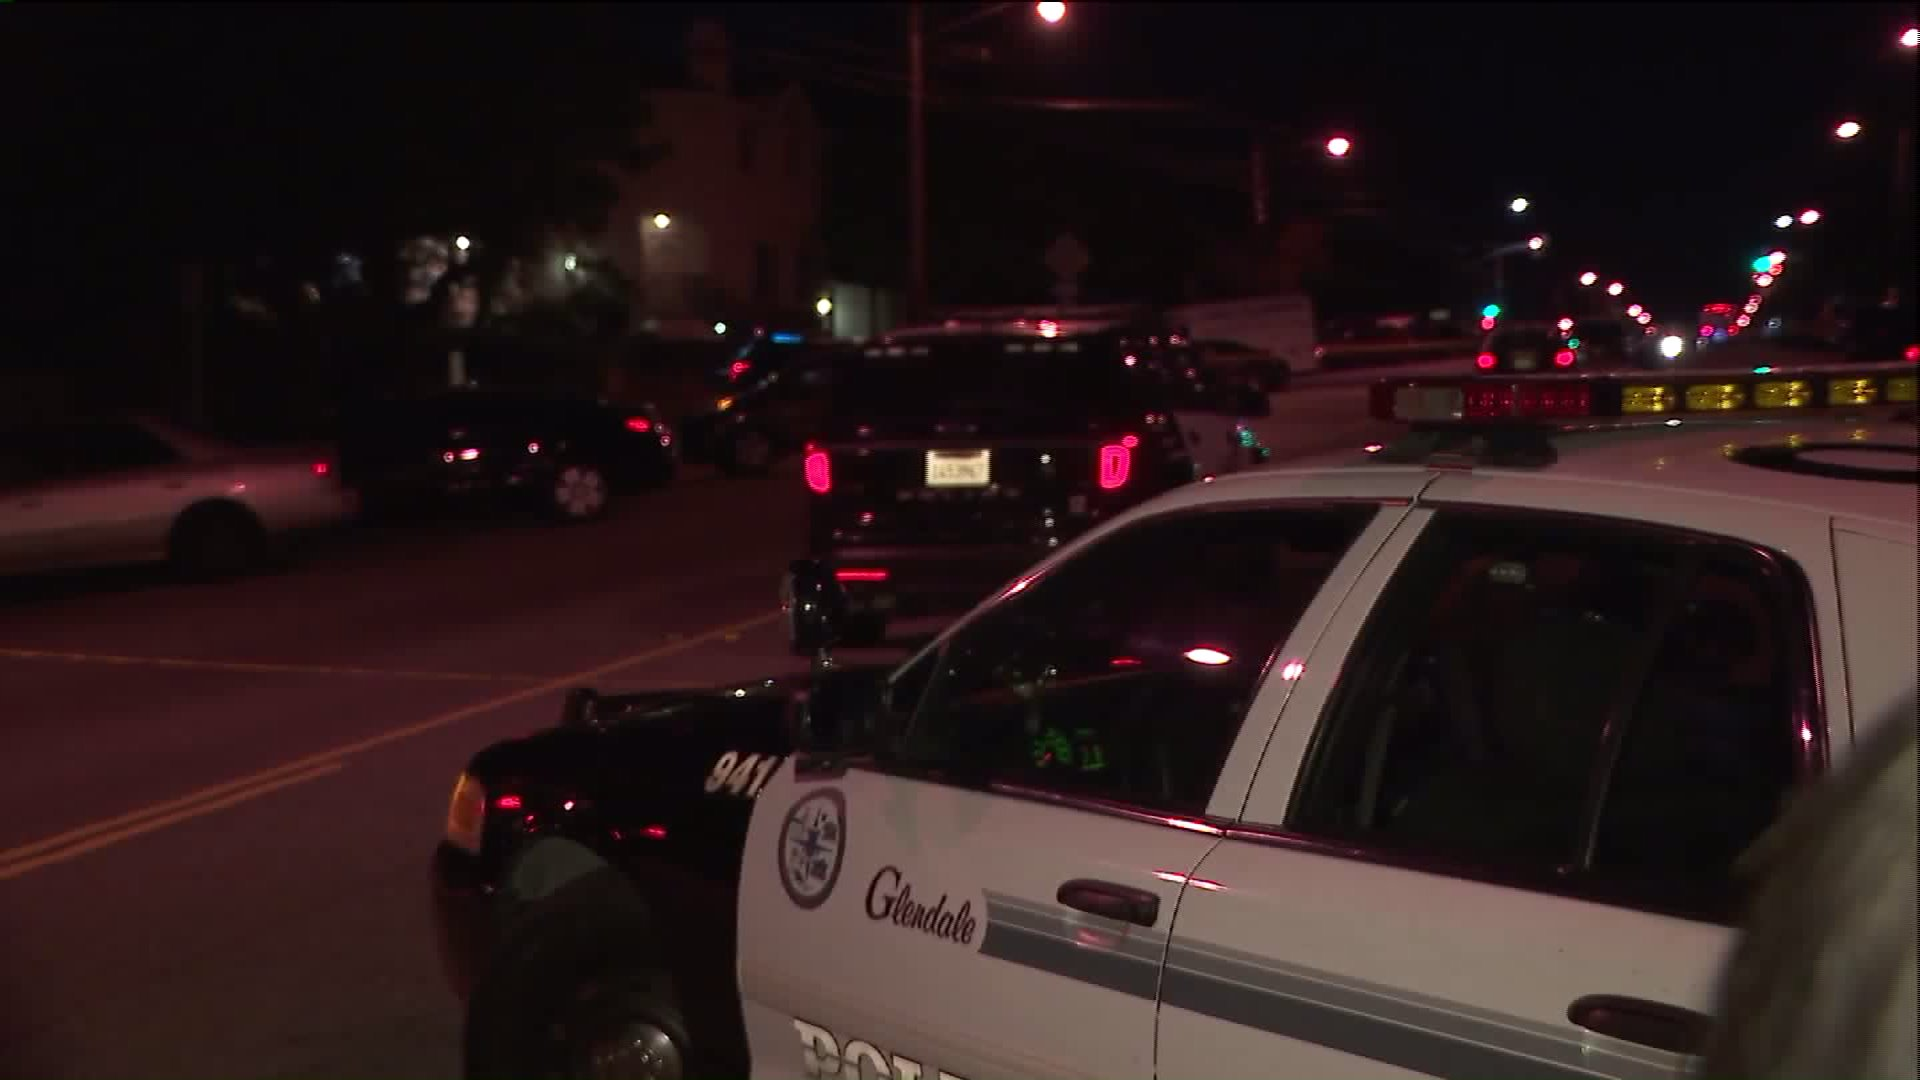 Police respond to the scene of a shooting in Glendale on Aug. 8, 2017. (Credit: KTLA)